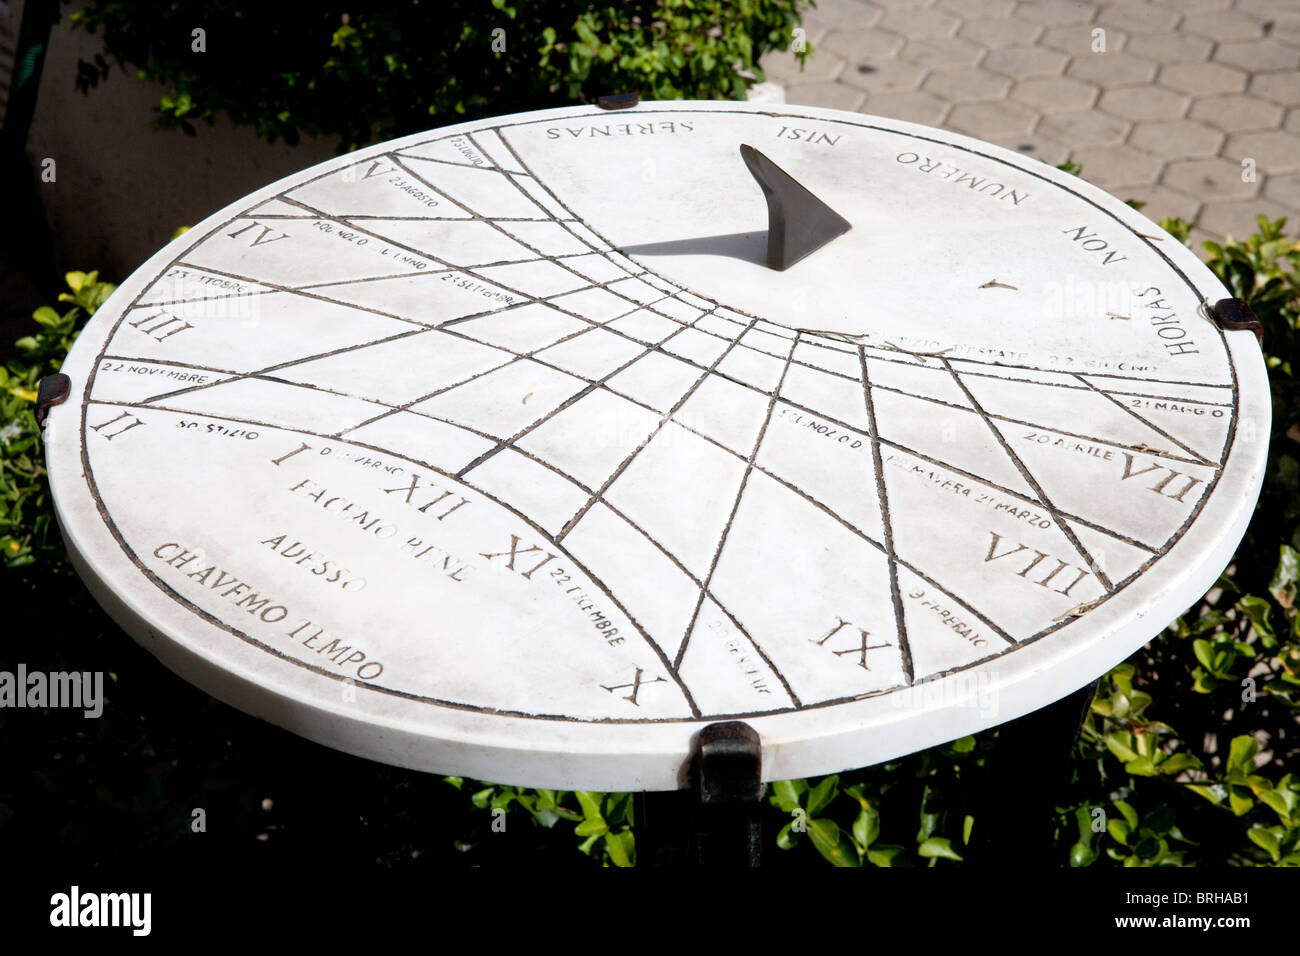 dial sundial sun measurement Latin Italy old time Stock Photo